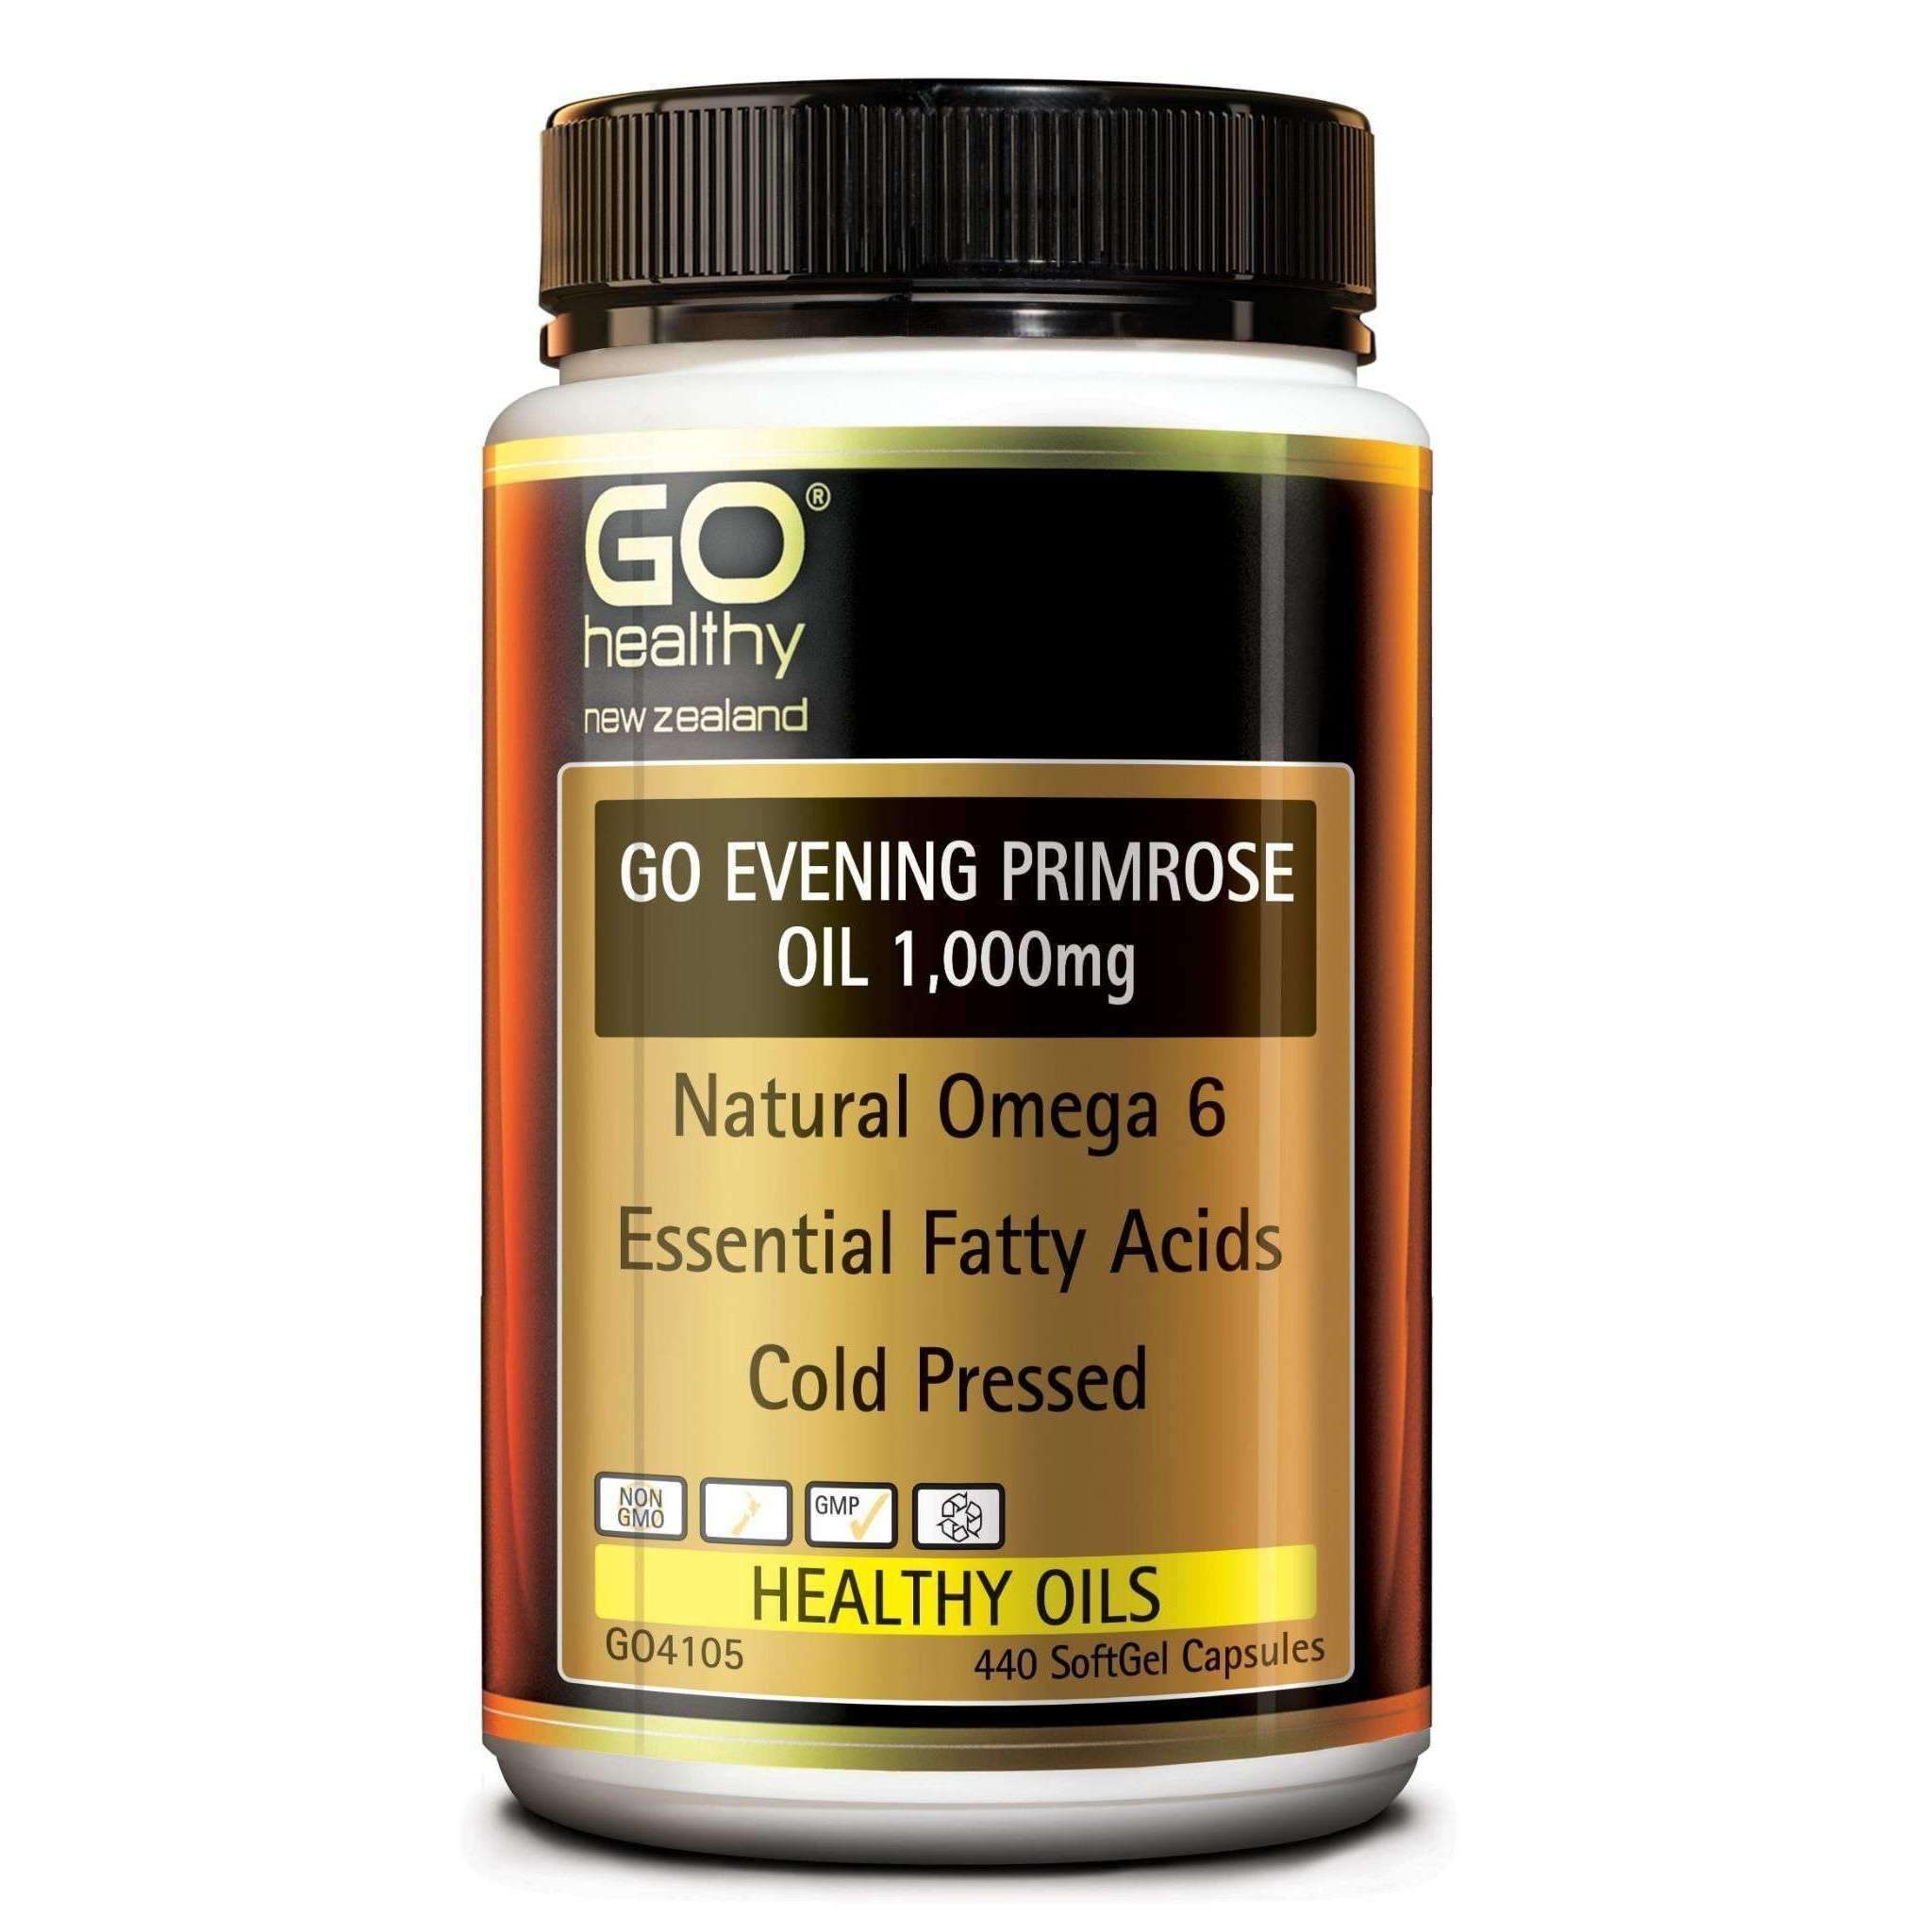 Go Evening Primrose Oil 1,000mg